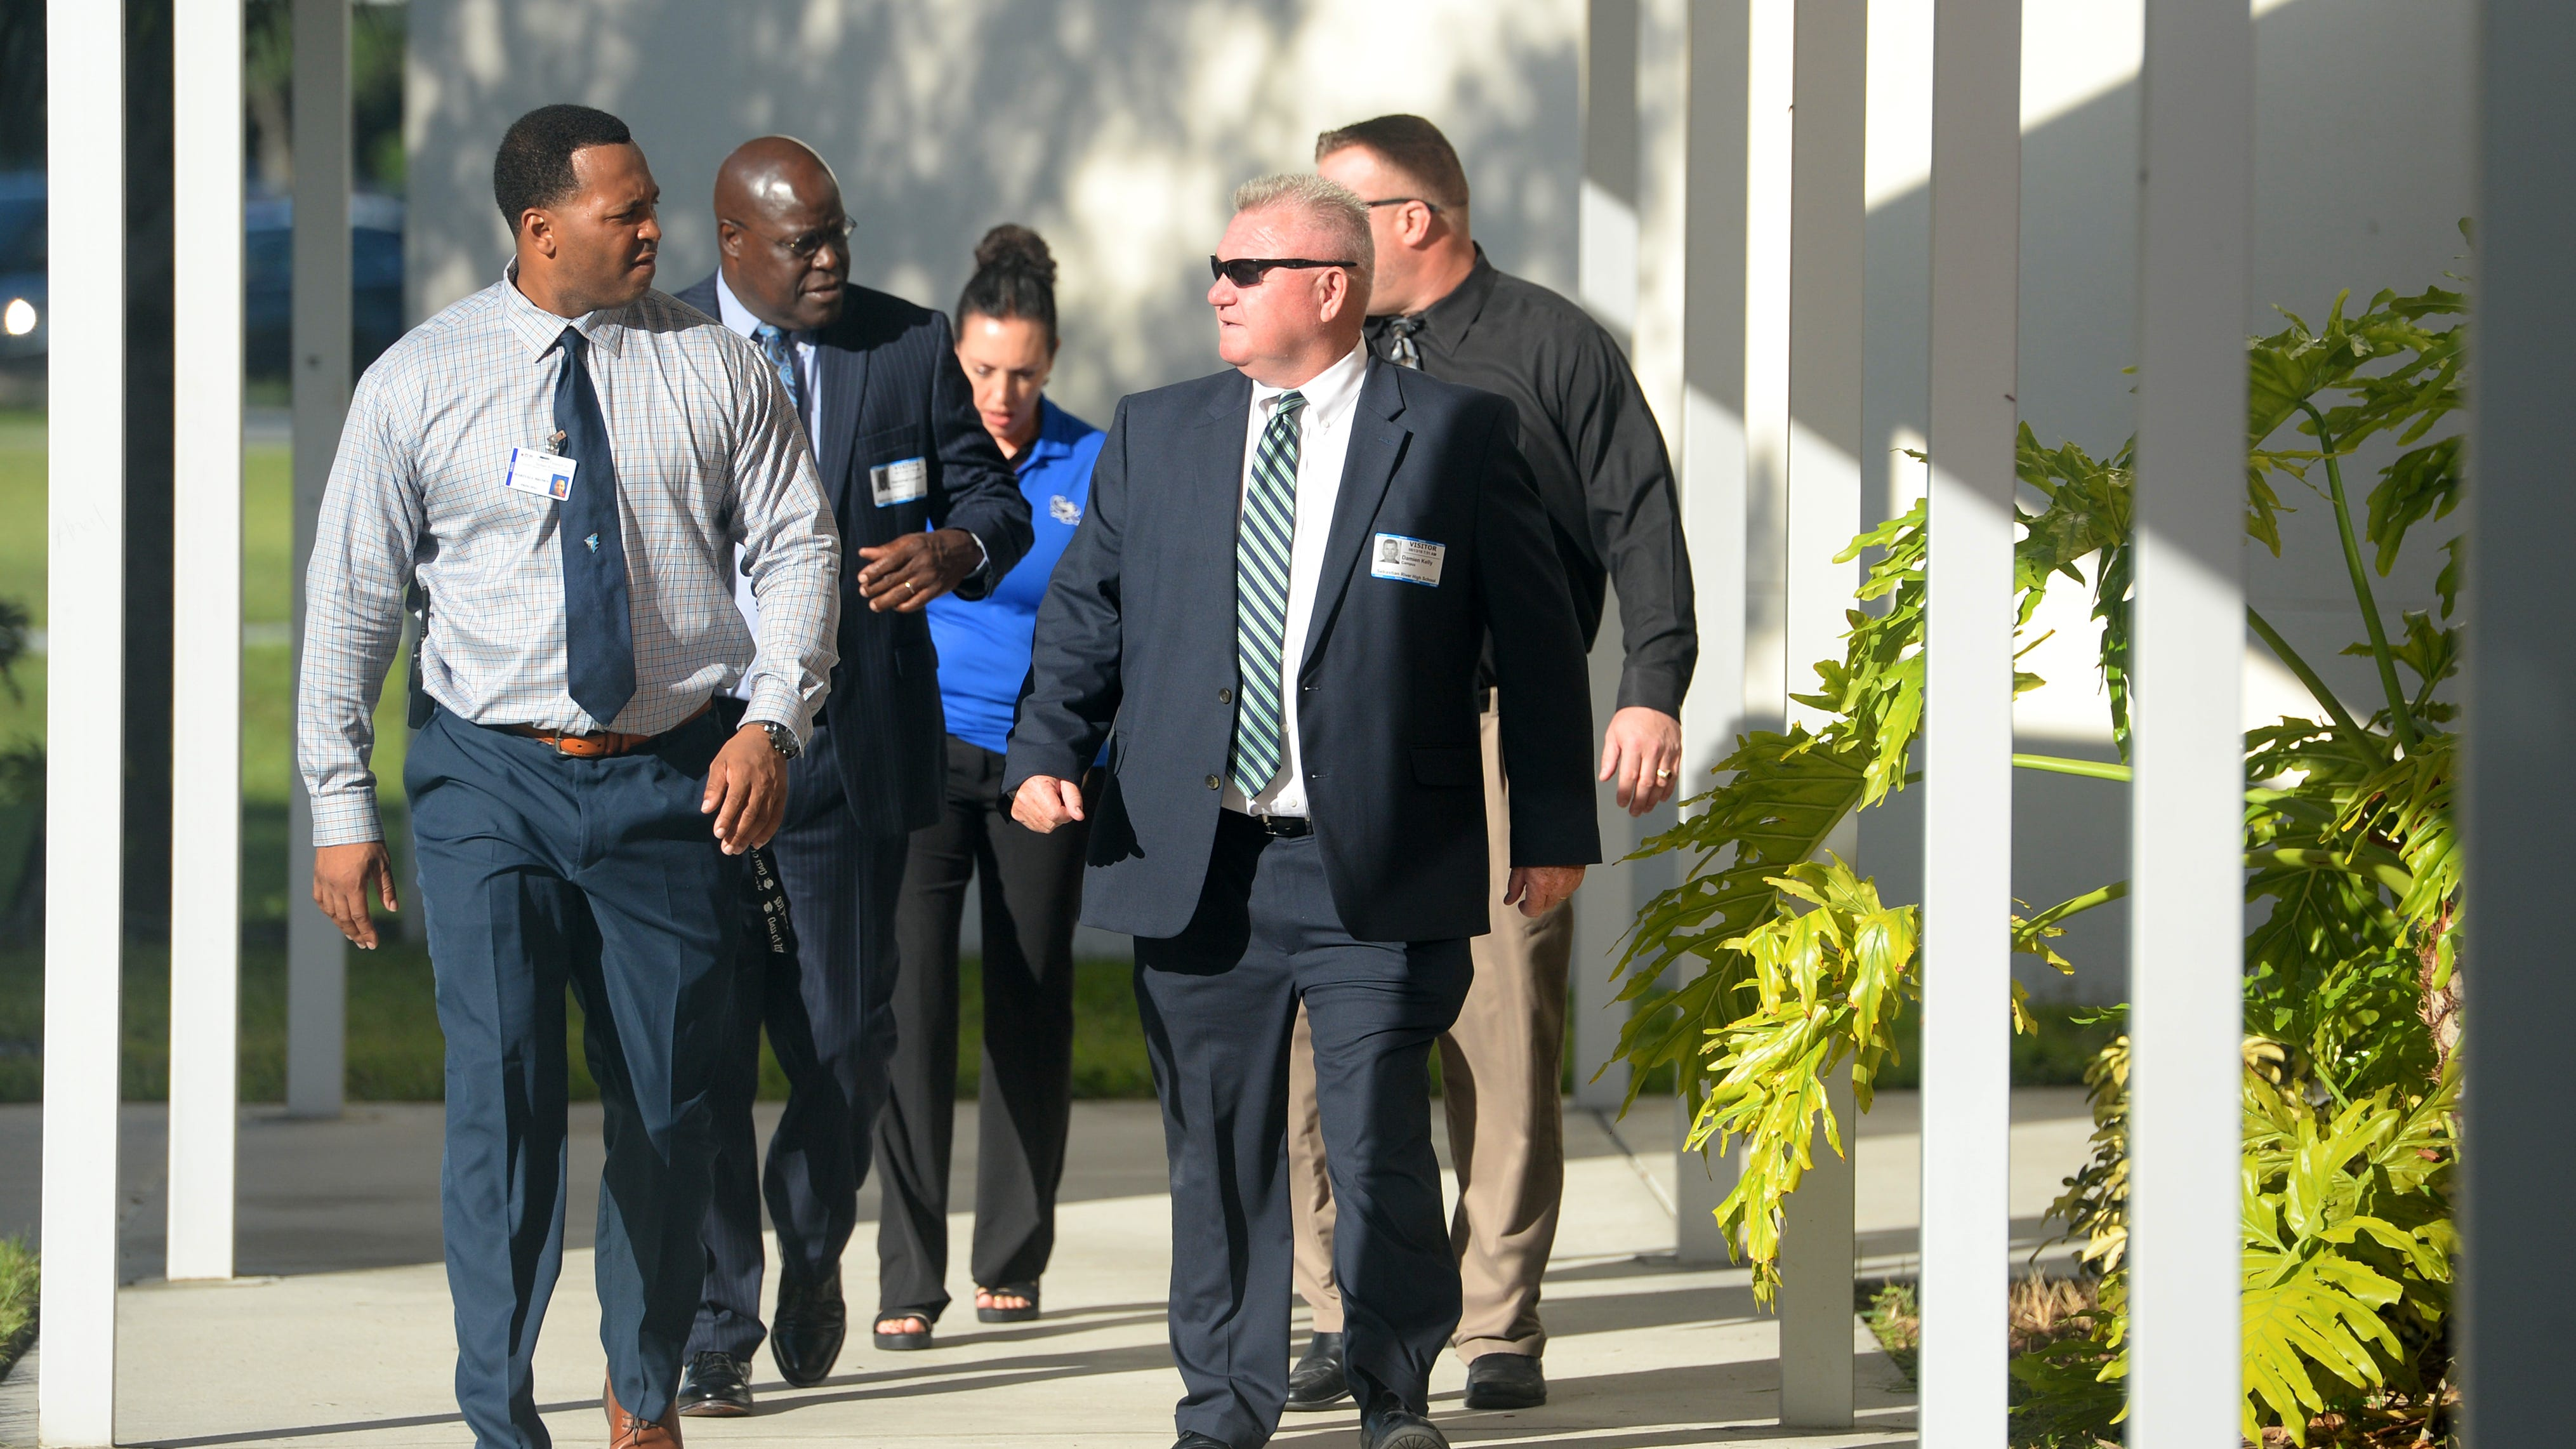 Florida's school security chief visits Sebastian River High School on the first day of class